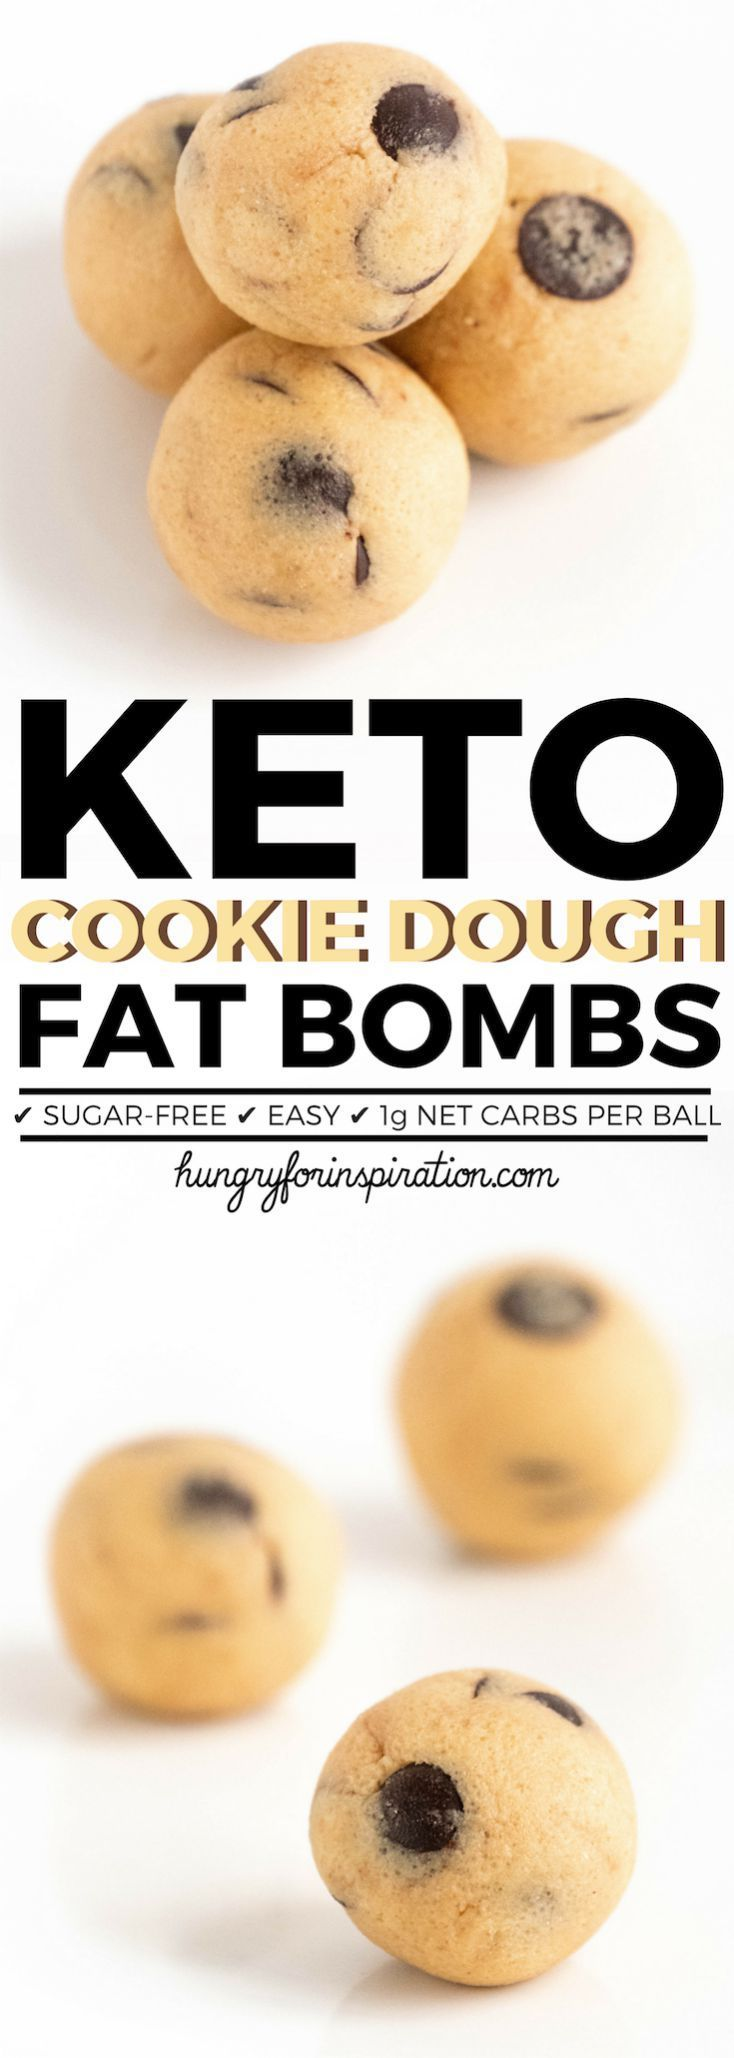 These Cookie Dough Keto Fat Bombs are an incredibly easy Keto Snack that you can make in 10 minutes! Only 1g net carbs per ball, gluten-free & sugar-free! #keto #ketorecipes #ketodiet #ketodessert #ketosnacks #ketogenic #ketogenicdiet #lowcarb #lowcarbrecipes #lowcarbdiet #lowcarbdesserts #lowcarbsnacks #cookiedough #ketosnacks